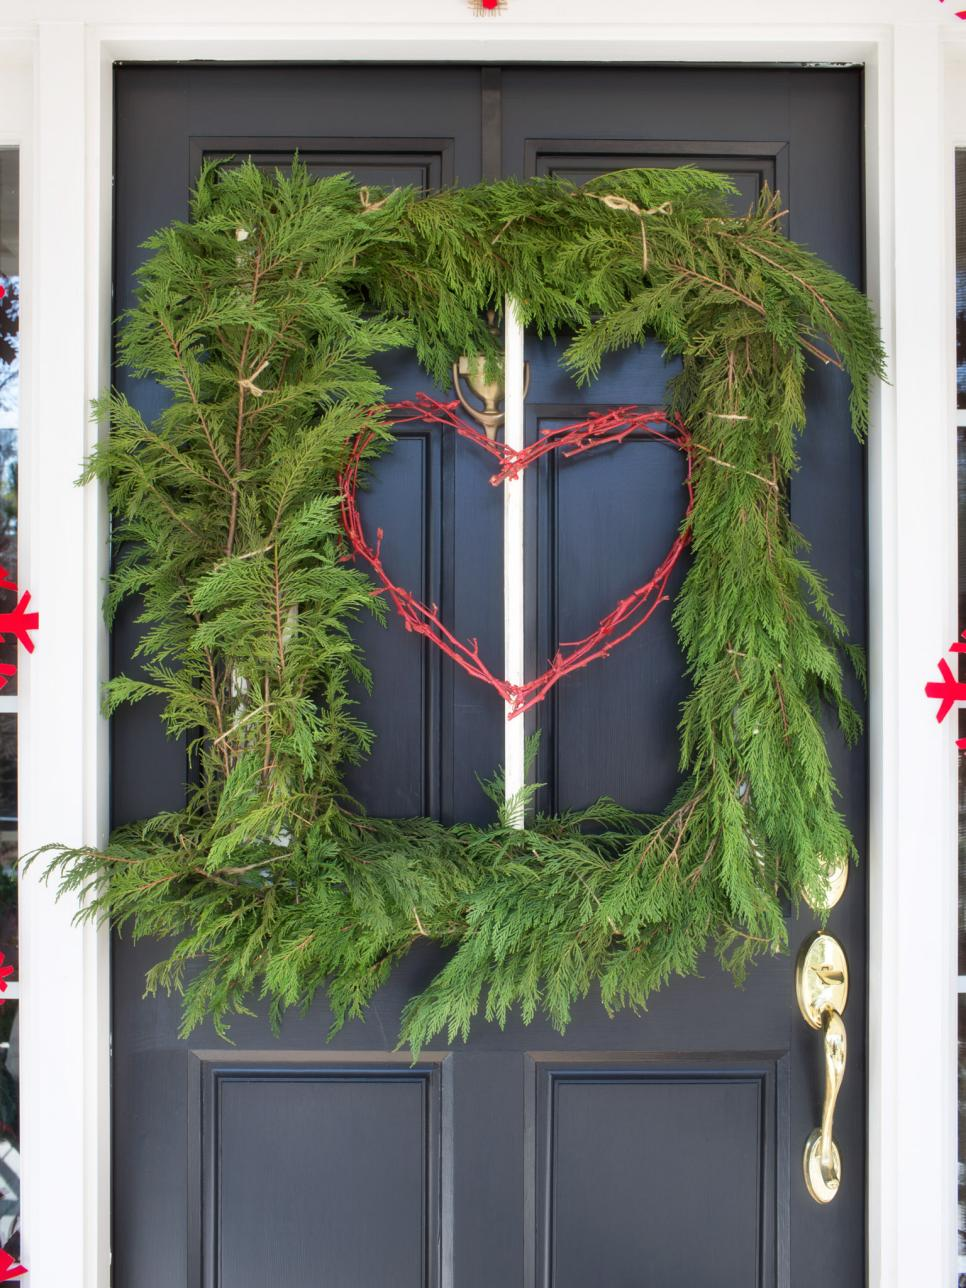 bpf holiday house exterior natural porch decorating square tree wreath v jpg rend hgtvcom 966 1288